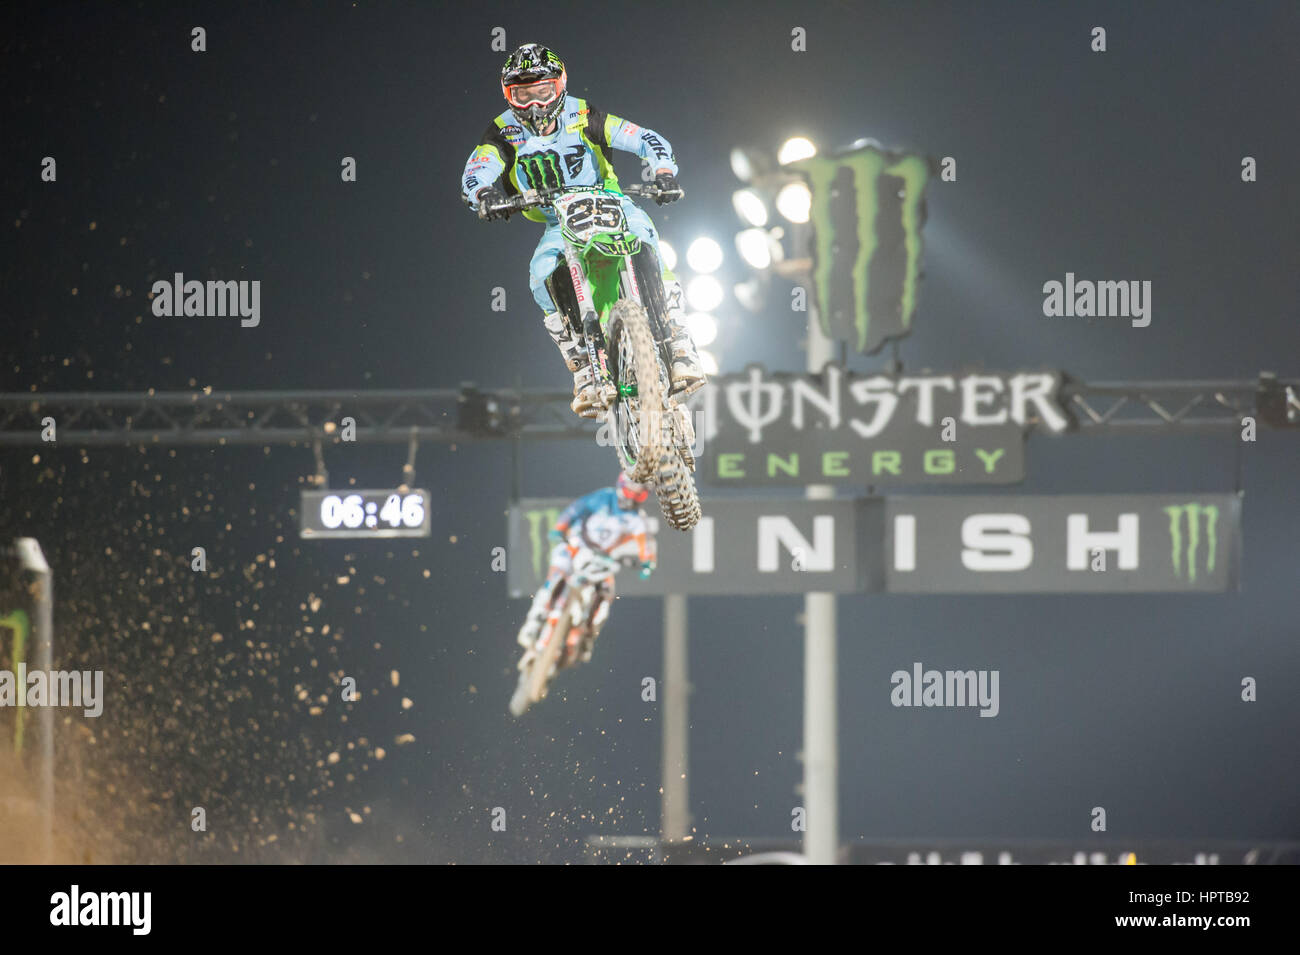 Losail Motocross Track, Qatar. 24th Feb, 2017. Clement Desalle during the opening day of the Motocross Grand Prix Stock Photo